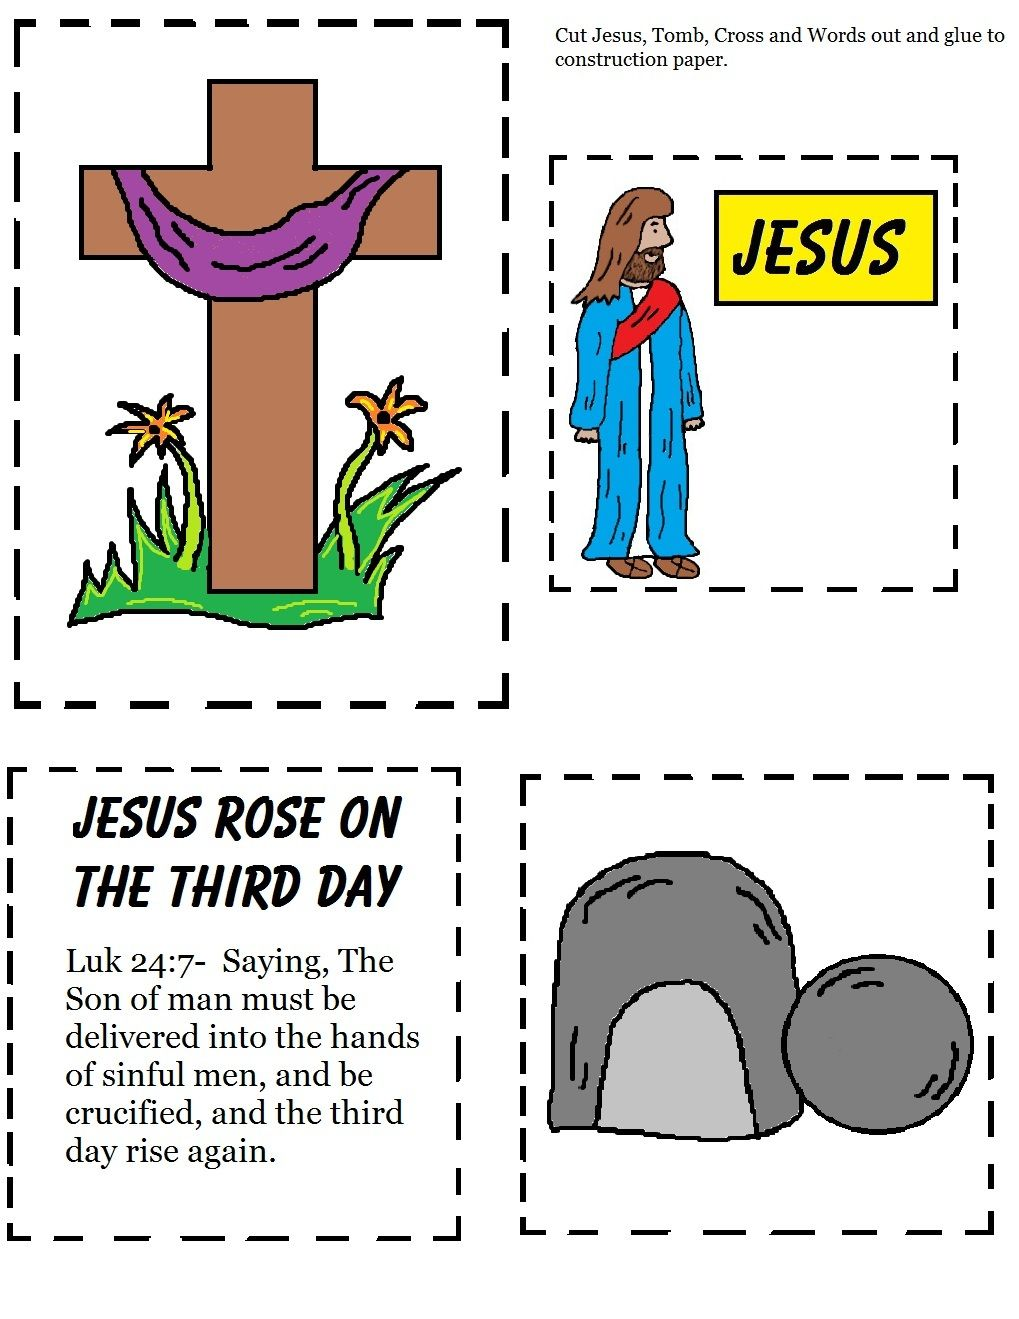 Easy easter toddler cutout sheet jesus rose on the third day easy easter toddler cutout sheet jesus rose on the third day negle Image collections